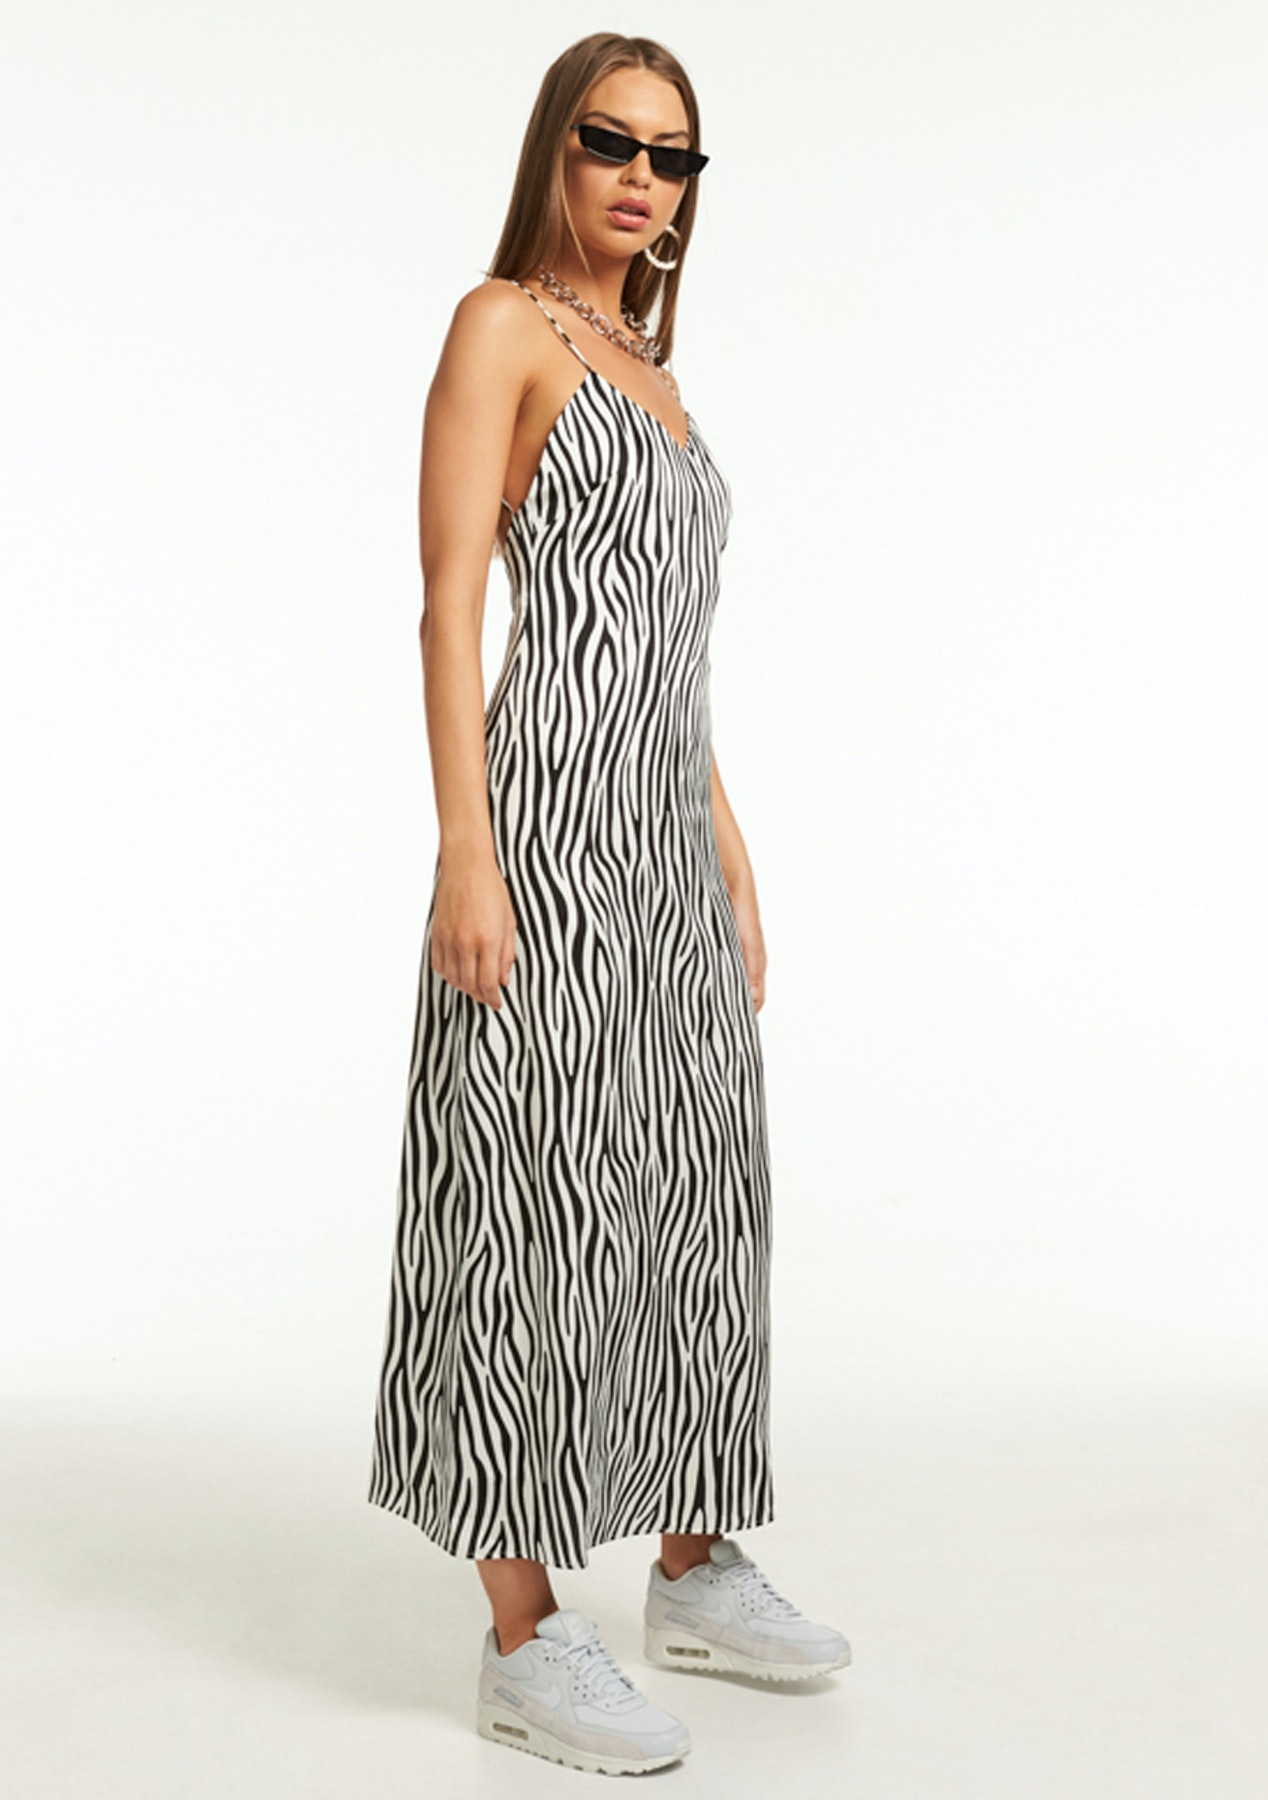 f9dd8ab6aa Lioness - Easy Does It Maxi Dress - Black White Zebra - New Lioness Under   40 - Onceit